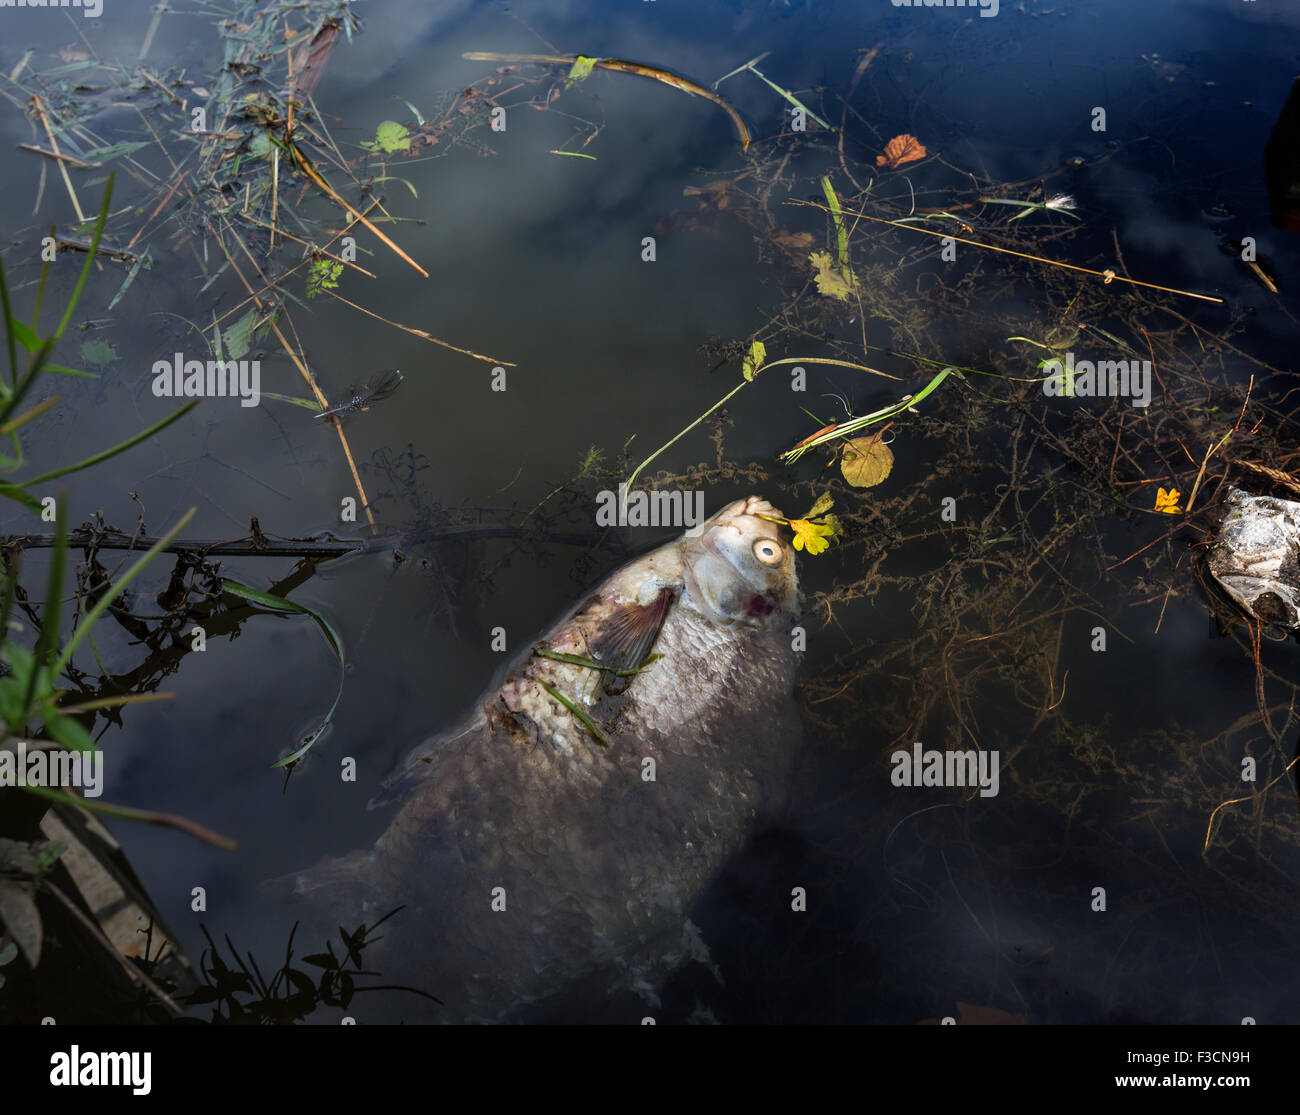 A dead fish floating in polluted river water - Stock Image